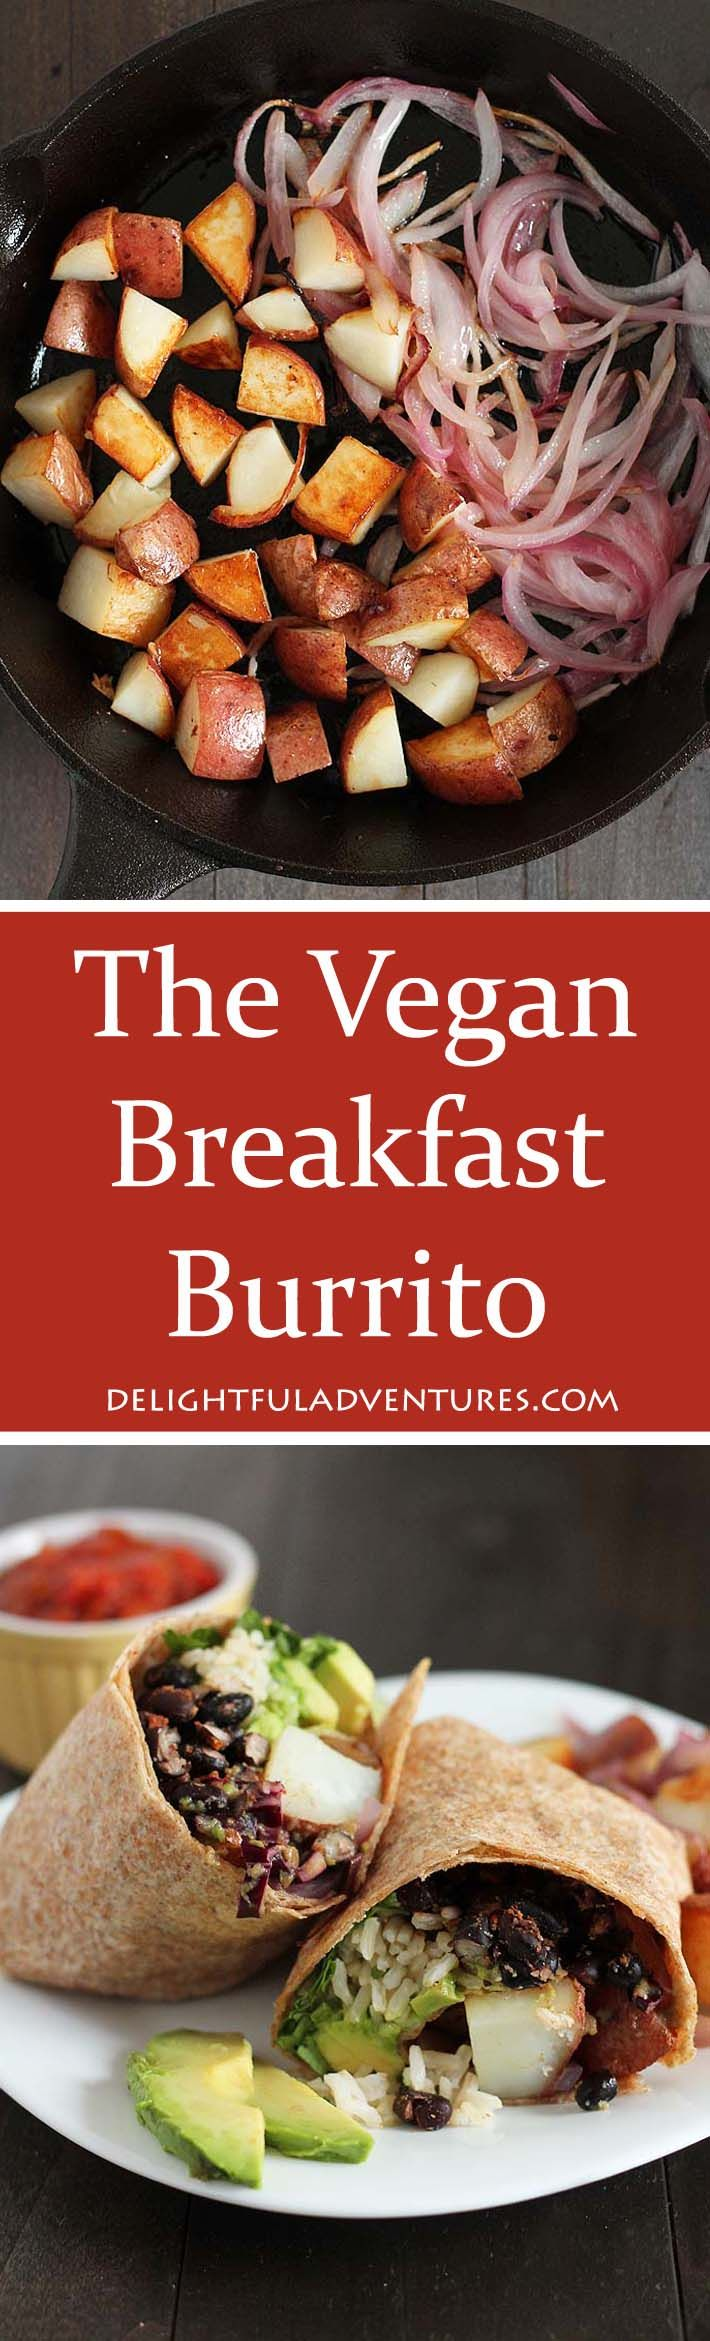 "Love breakfast burritos? Well, you're going to love this Vegan Breakfast Burrito recipe from the Minimalist Baker's new recipe book ""Everyday Cooking: 101 Entirely Plant-based, Mostly Gluten-Free, Easy and Delicious Recipes!"""